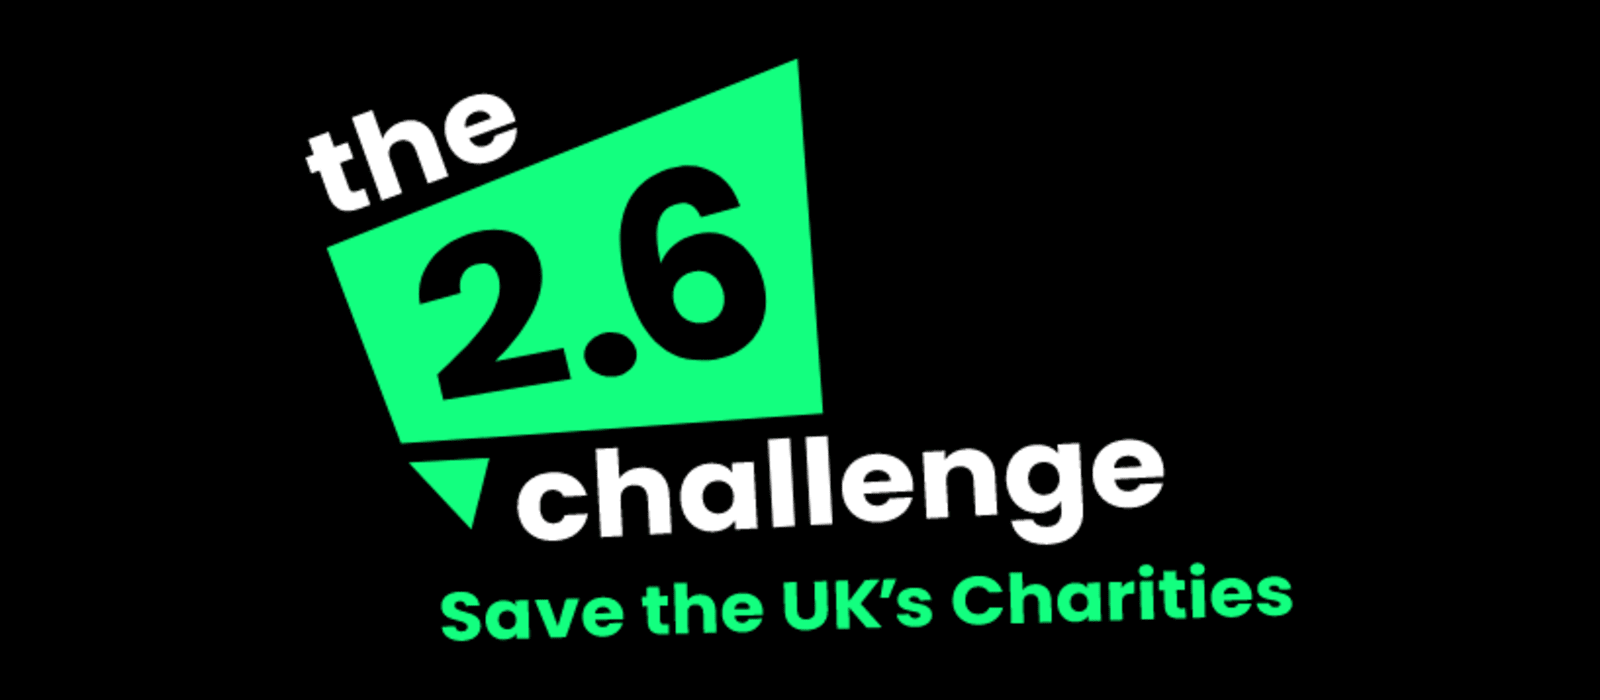 Are you up for the 2.6 Challenge?